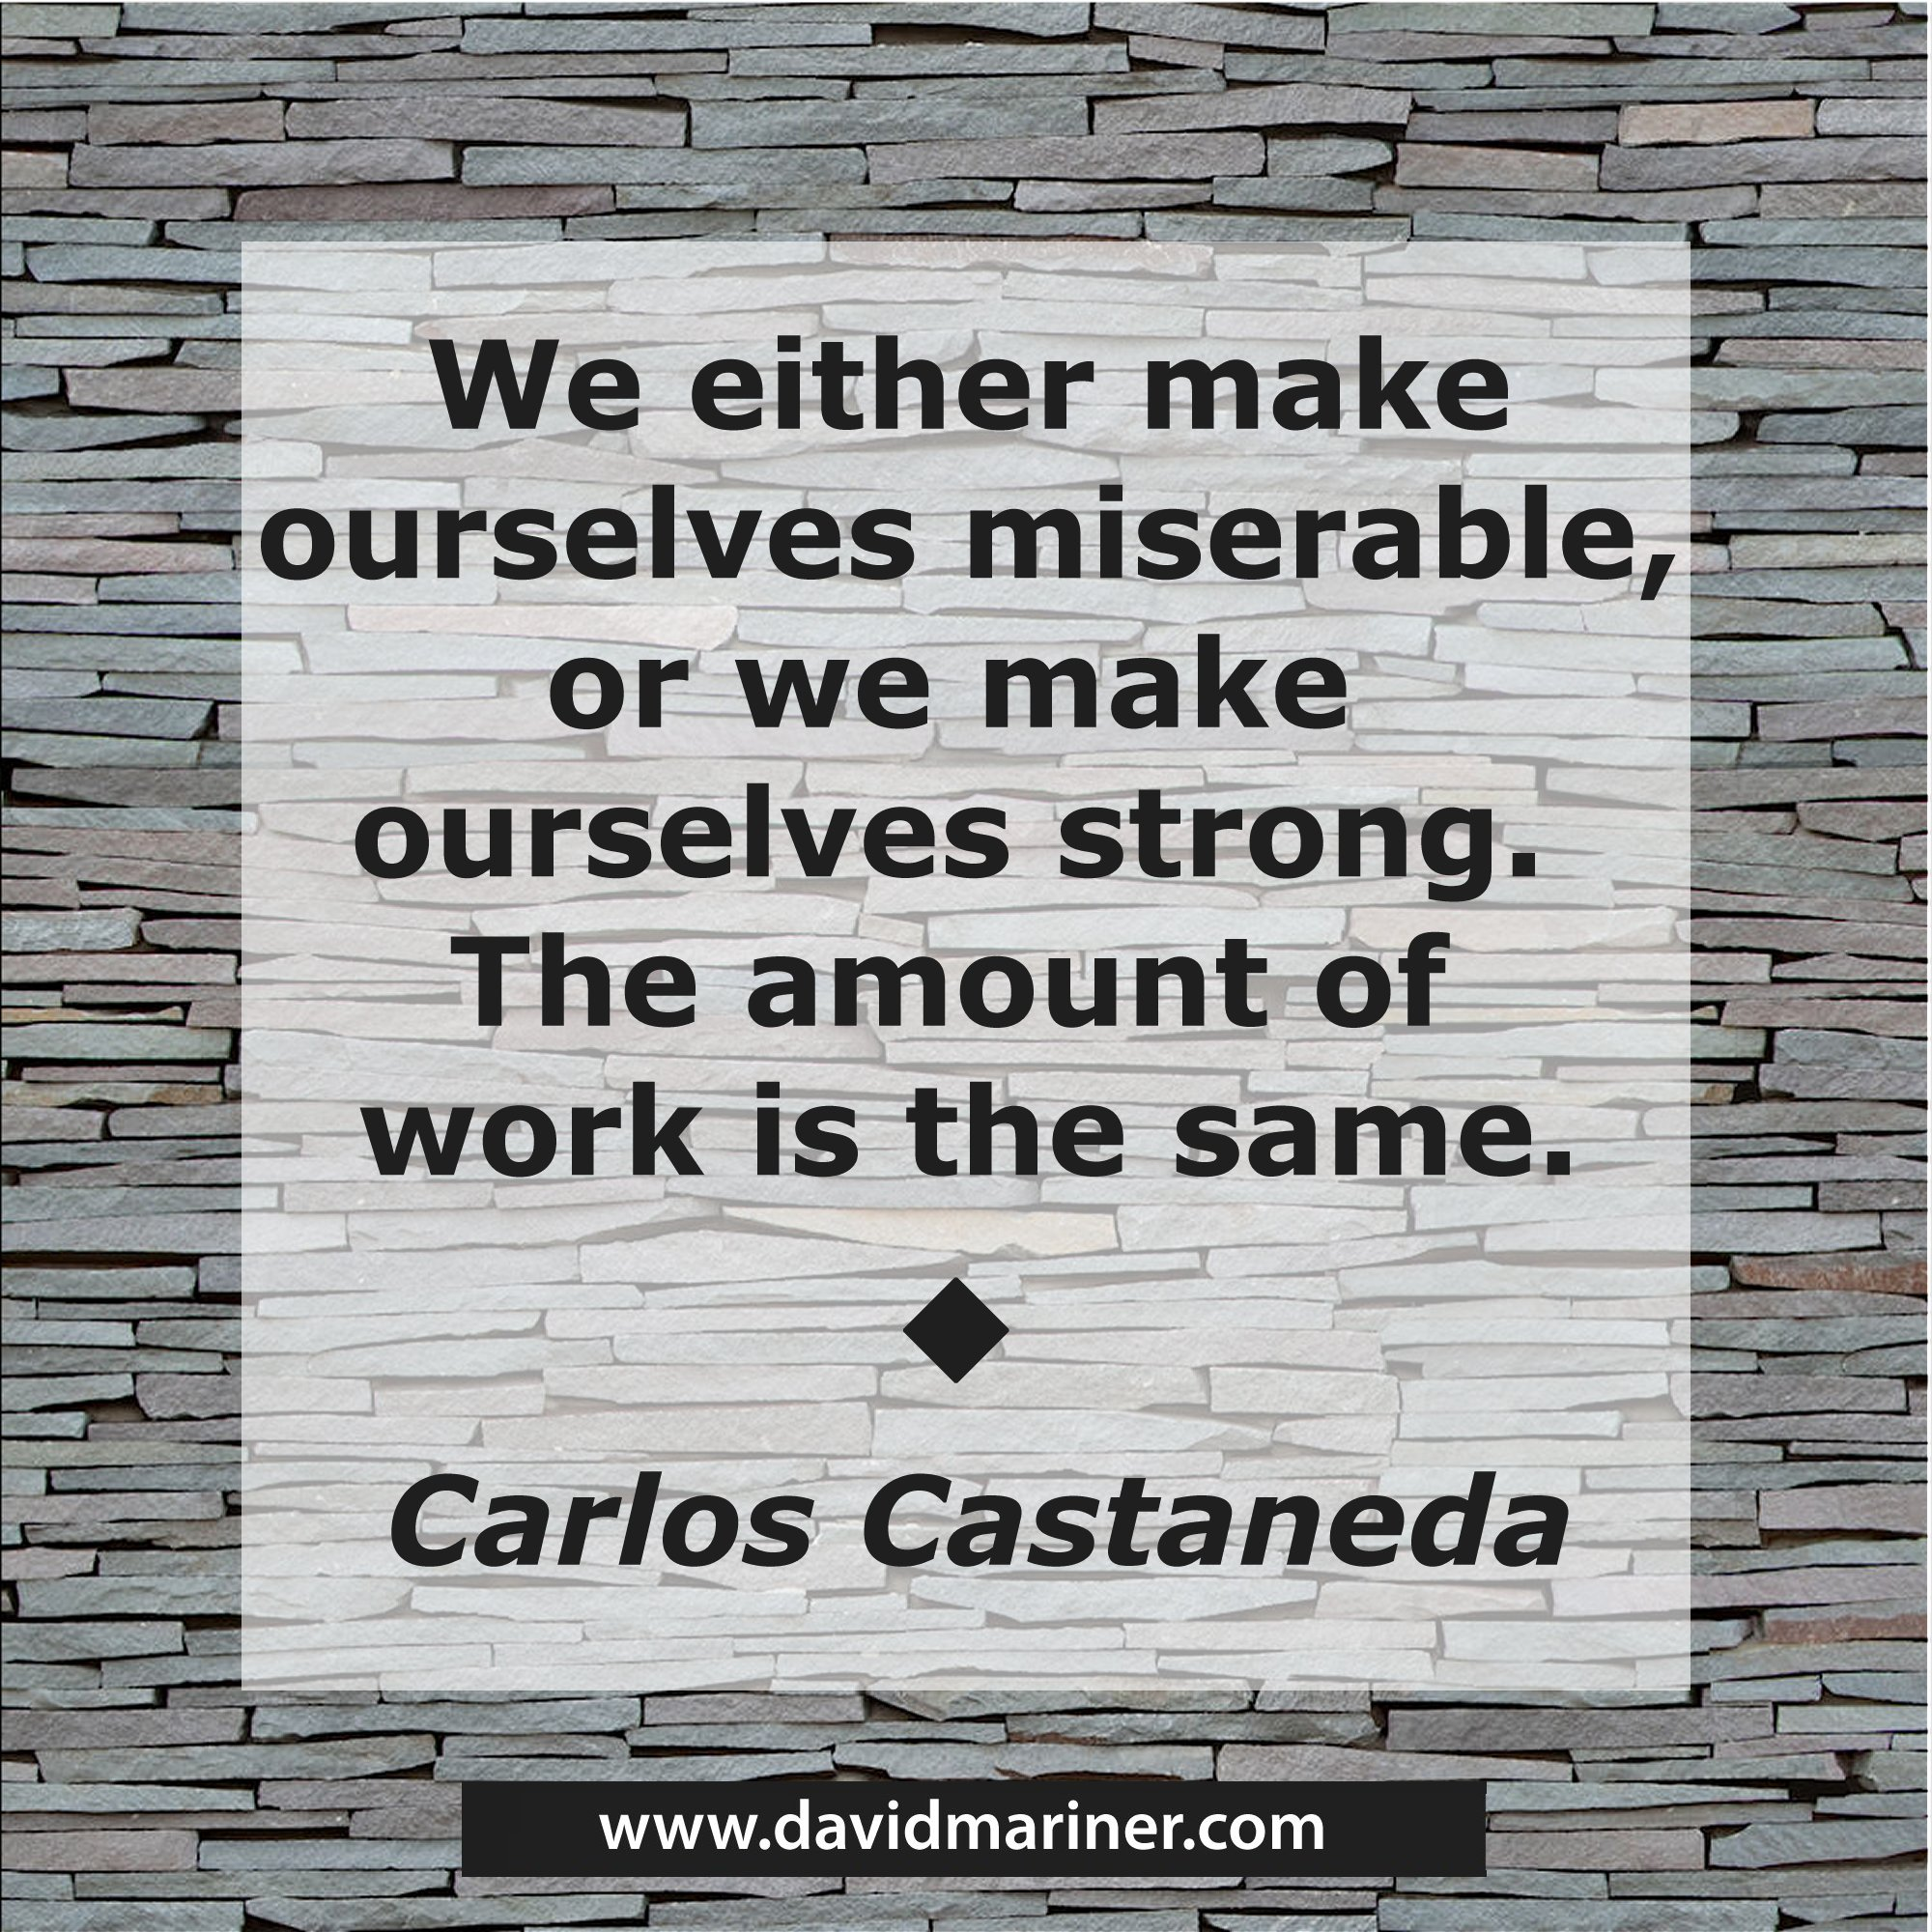 We either make ourselves miserable or we make ourselves strong. The amount of work is the same. - Carlos Castaneda